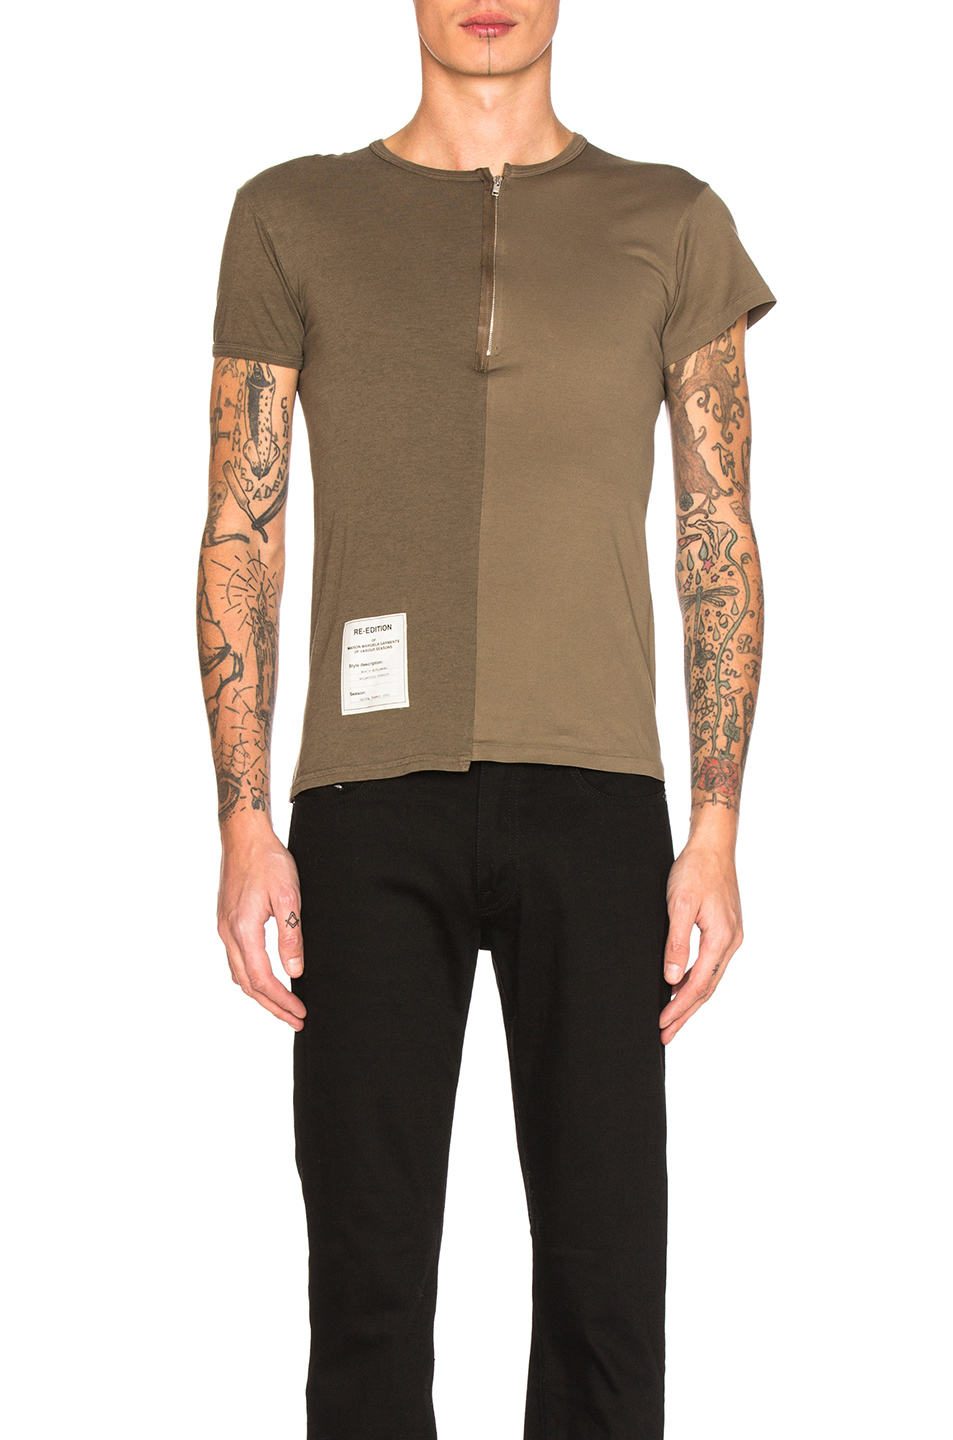 Maison Margiela Overdyed Tee in Brown